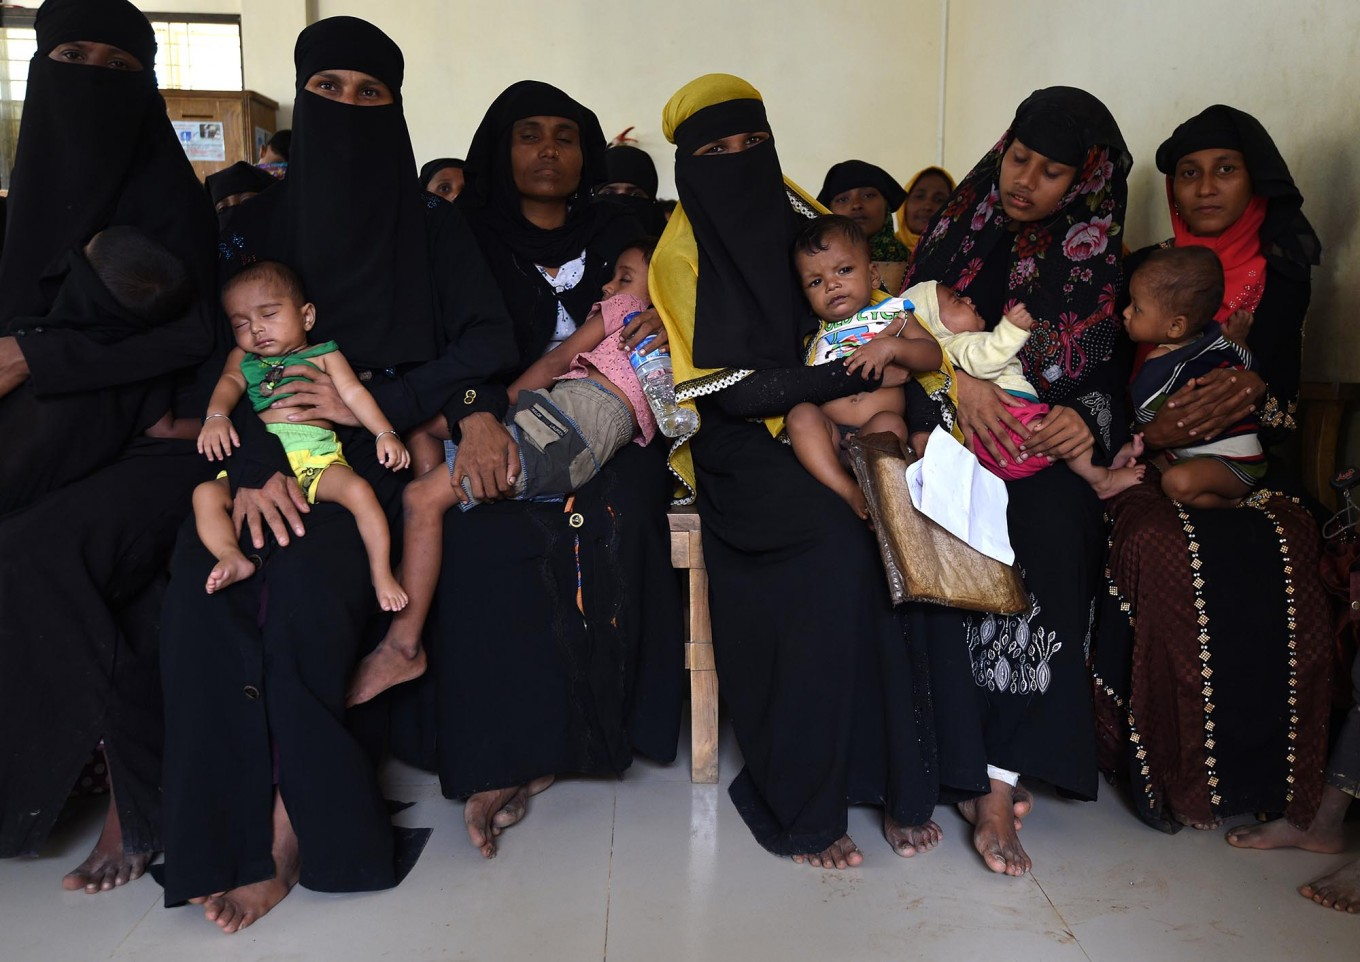 """Rohingya Muslim refugees wait with their children for a consultation at a clinic run by the International Organisation for Migration (IOM) in Leda refugee camp near the Bangladeshi town of Teknaf on September 18, 2017. Pressure grew on Myanmar September 18 as a rights group urged world leaders to impose sanctions on its military, which is accused of driving out more than 410,000 Rohingya Muslims in an orchestrated """"ethnic cleansing"""" campaign. The exodus of Rohingya refugees from mainly Buddhist Myanmar to neighbouring Bangladesh has sparked a humanitarian emergency. Aid groups are struggling to provide relief to a daily stream of new arrivals, more than half of whom are children. AFP/ Dominique Faget"""